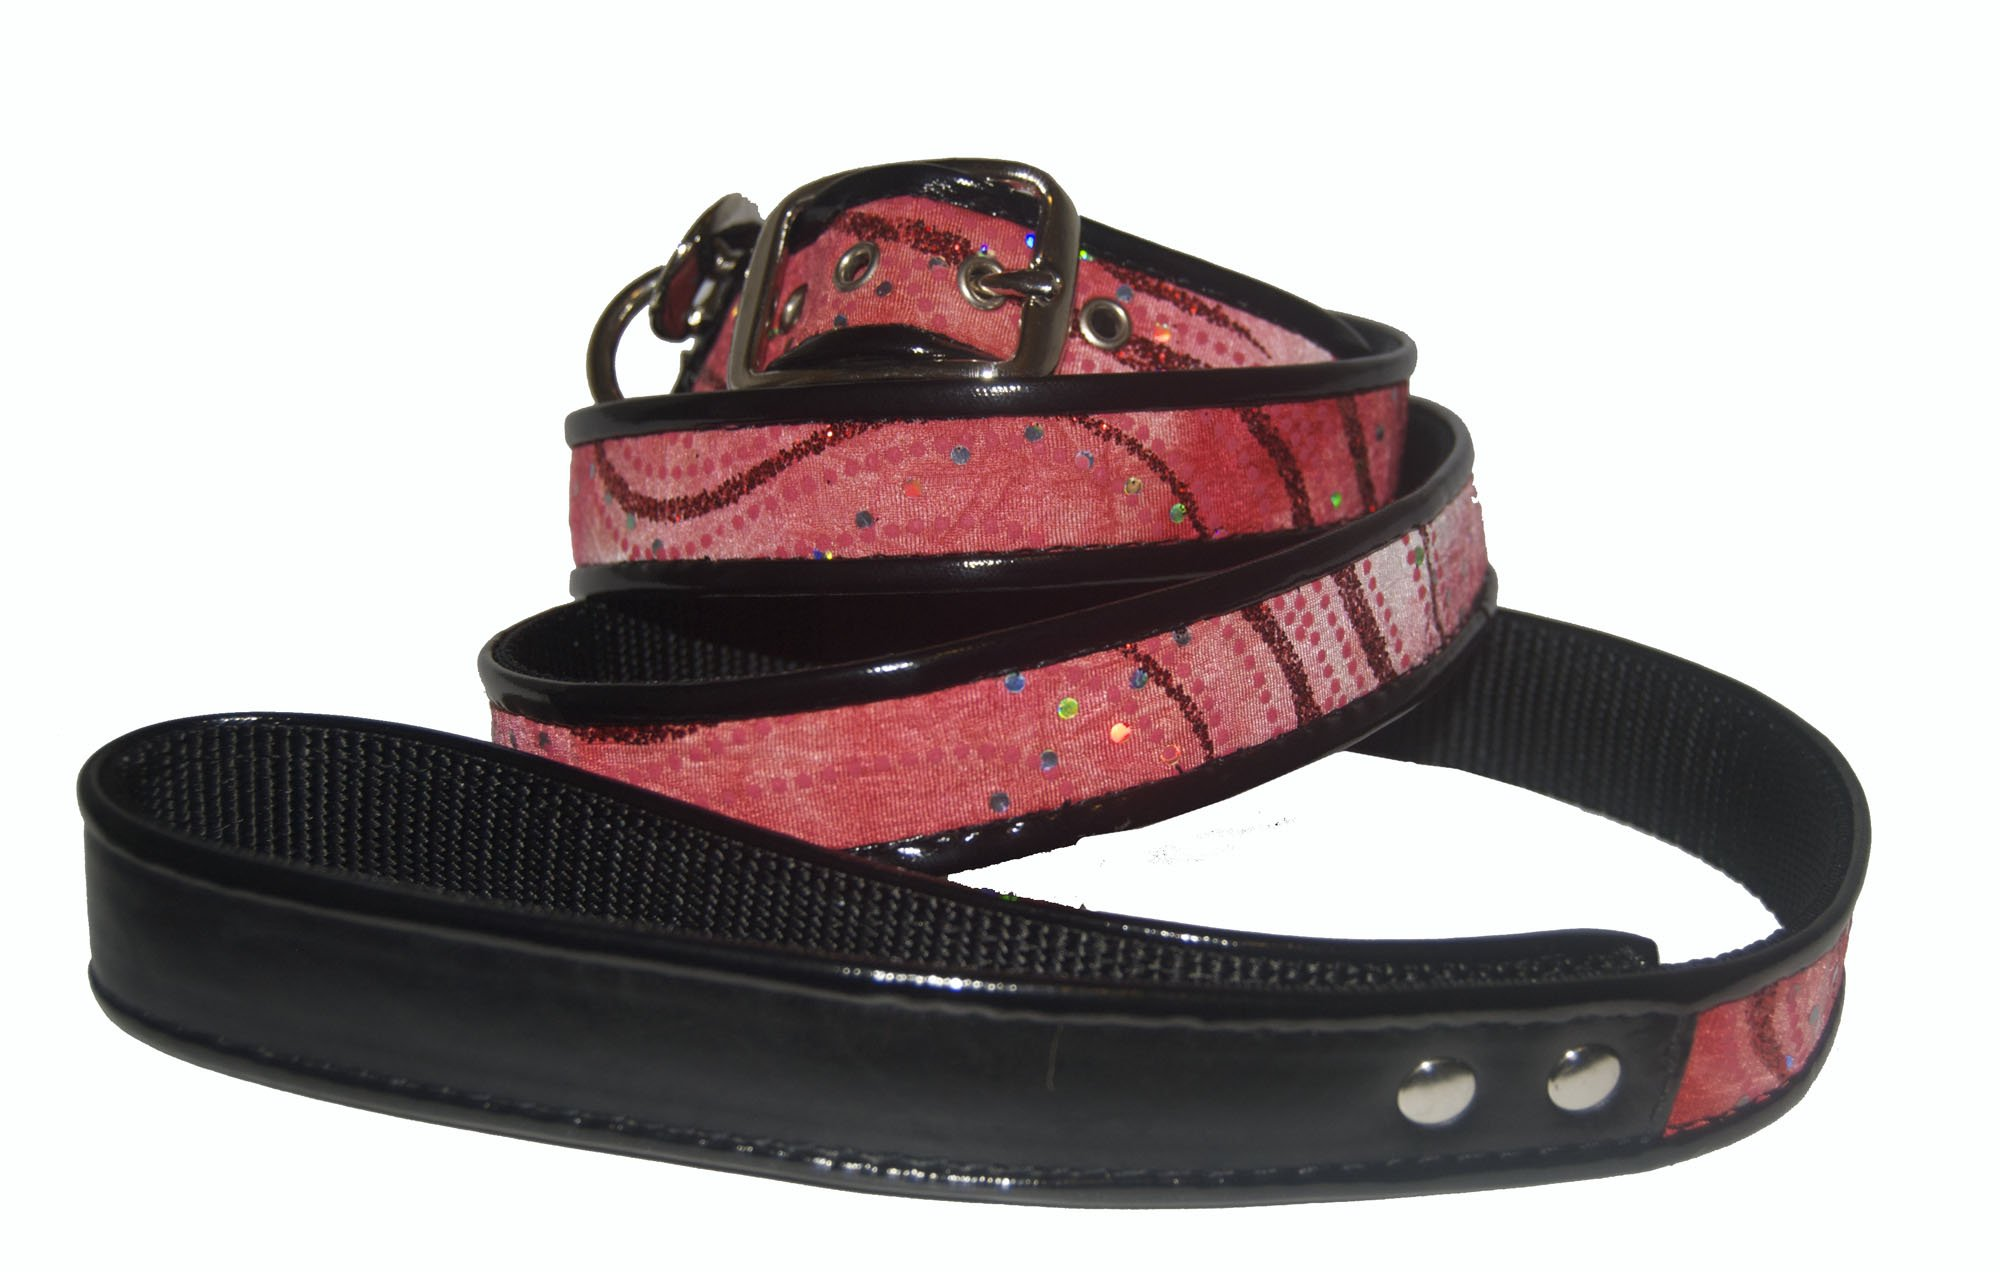 Jodi Head's RJ Cash Petwear Dede Red Sparkle Fabric Dog Collar and Leash, Large, Red by Unknown